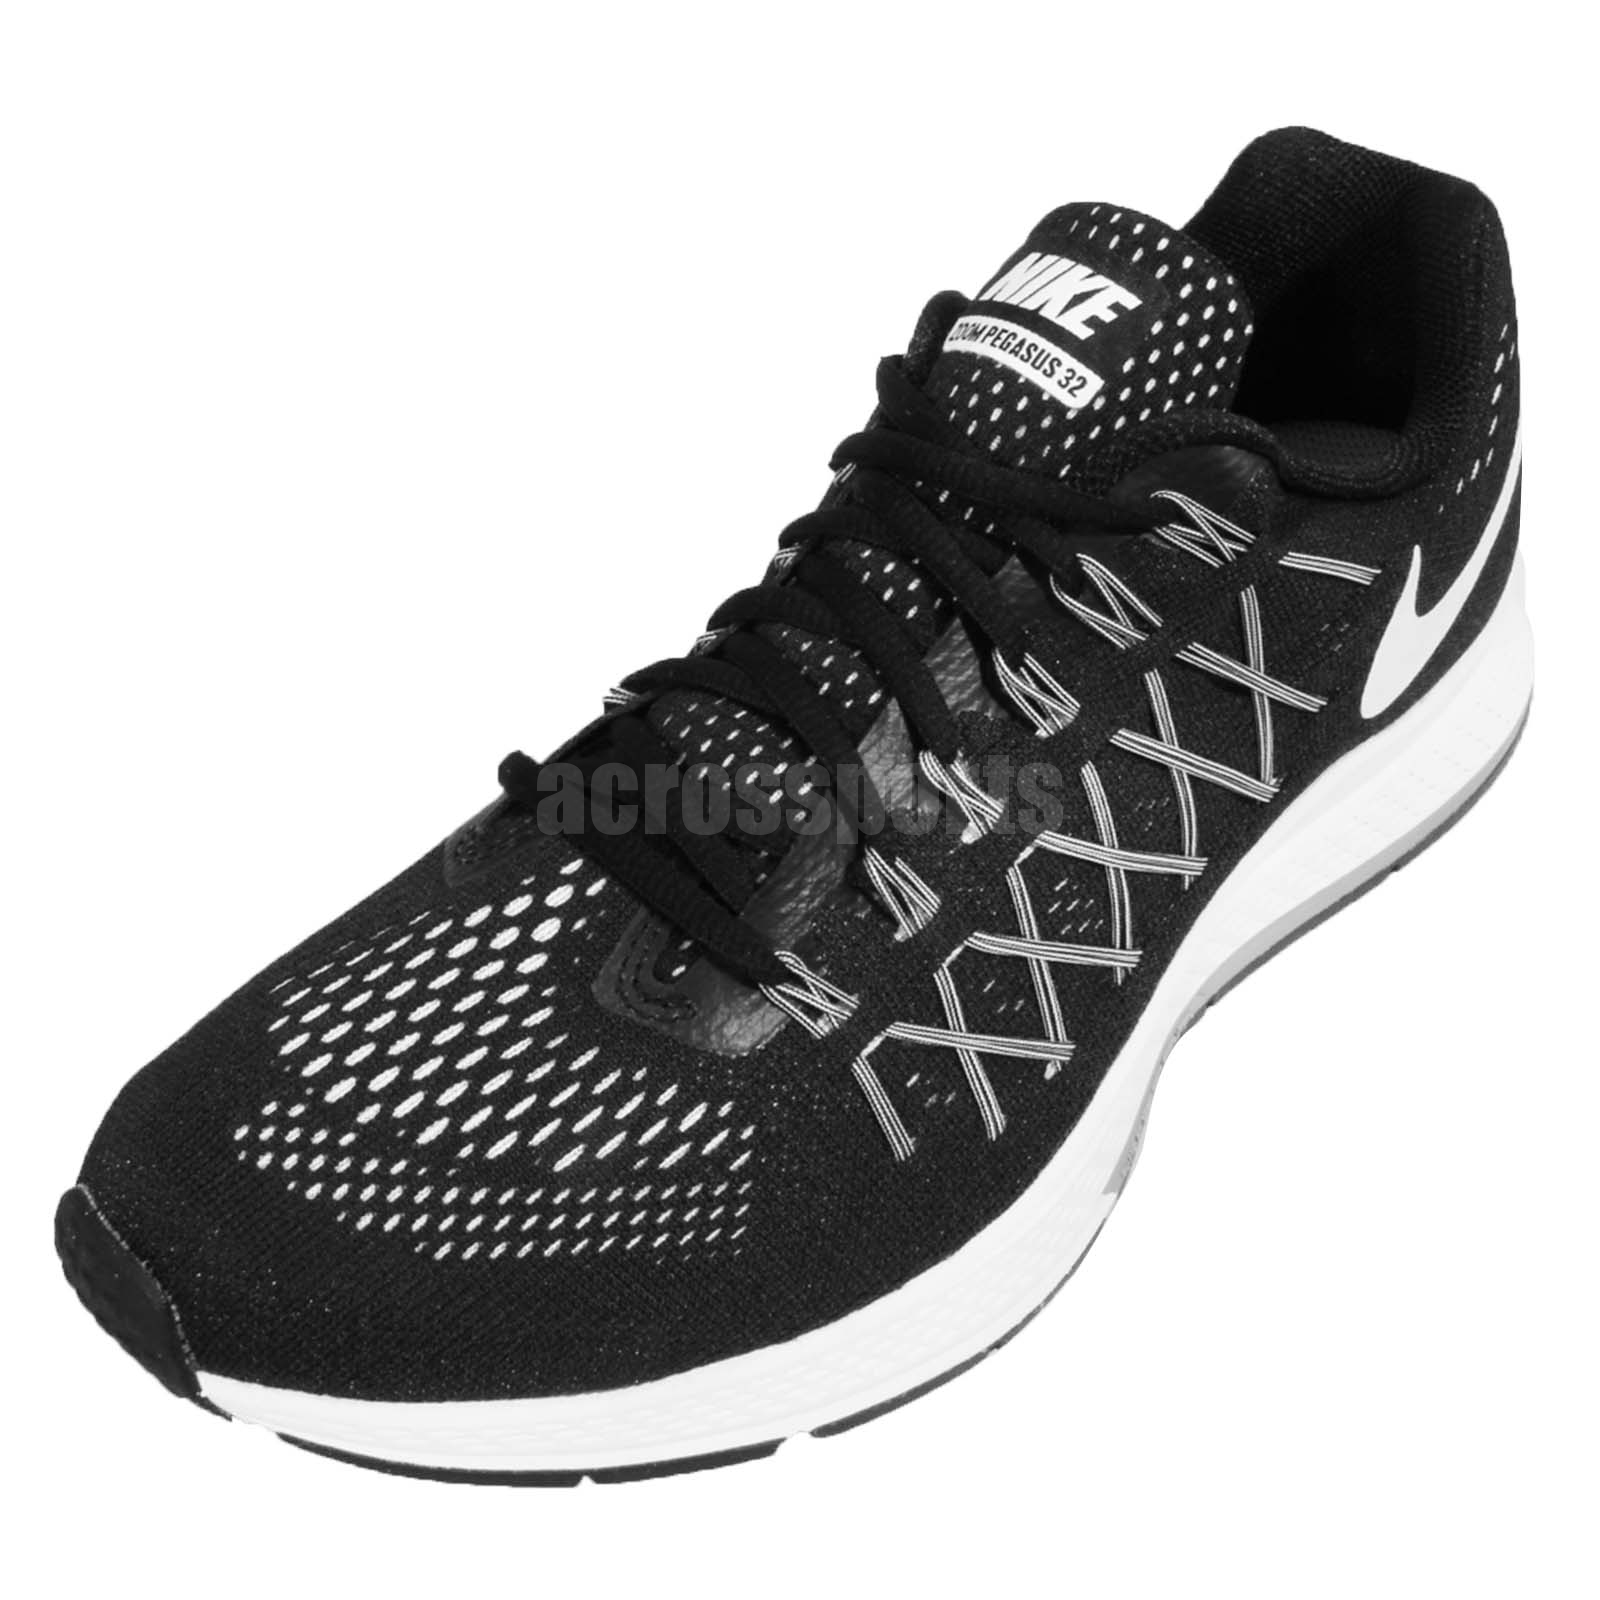 Using Cross Training Shoes For Running